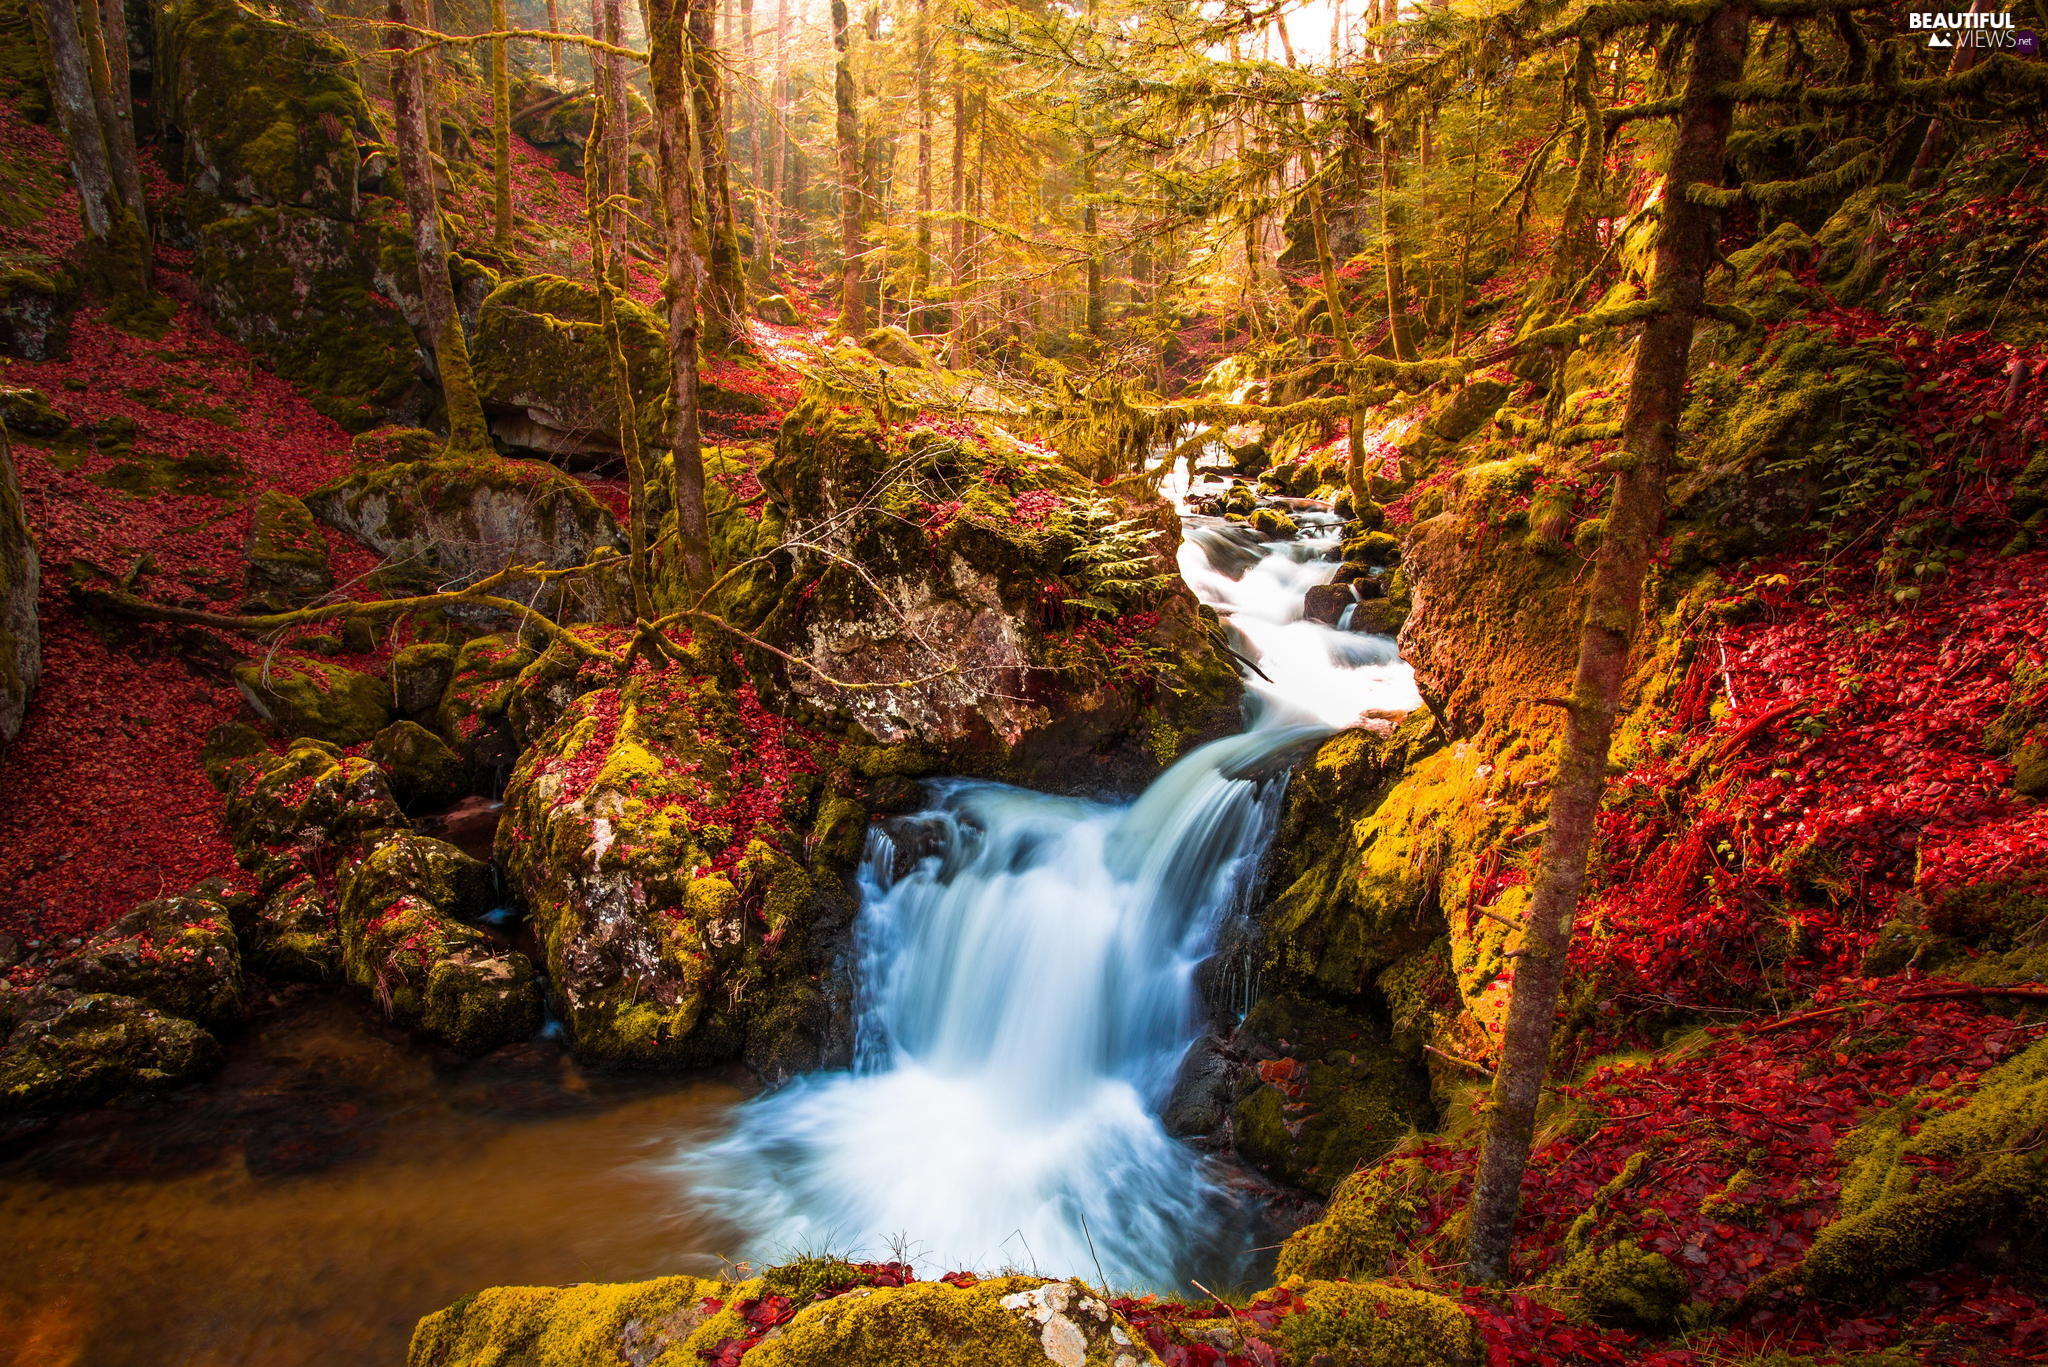 trees, autumn, River, cascade, viewes, forest